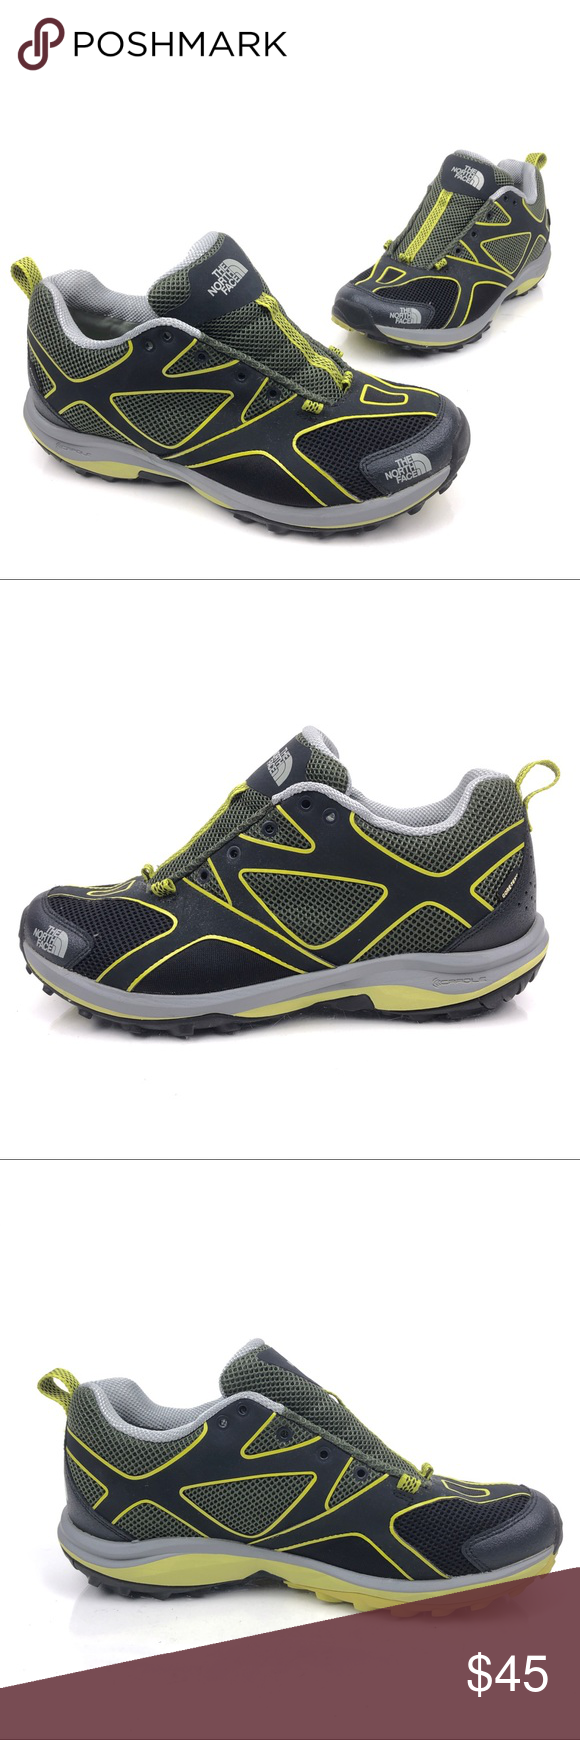 c9d27622a The North Face Gore-Tex Cradle Hiking Shoes Sz 10 The North Face ...